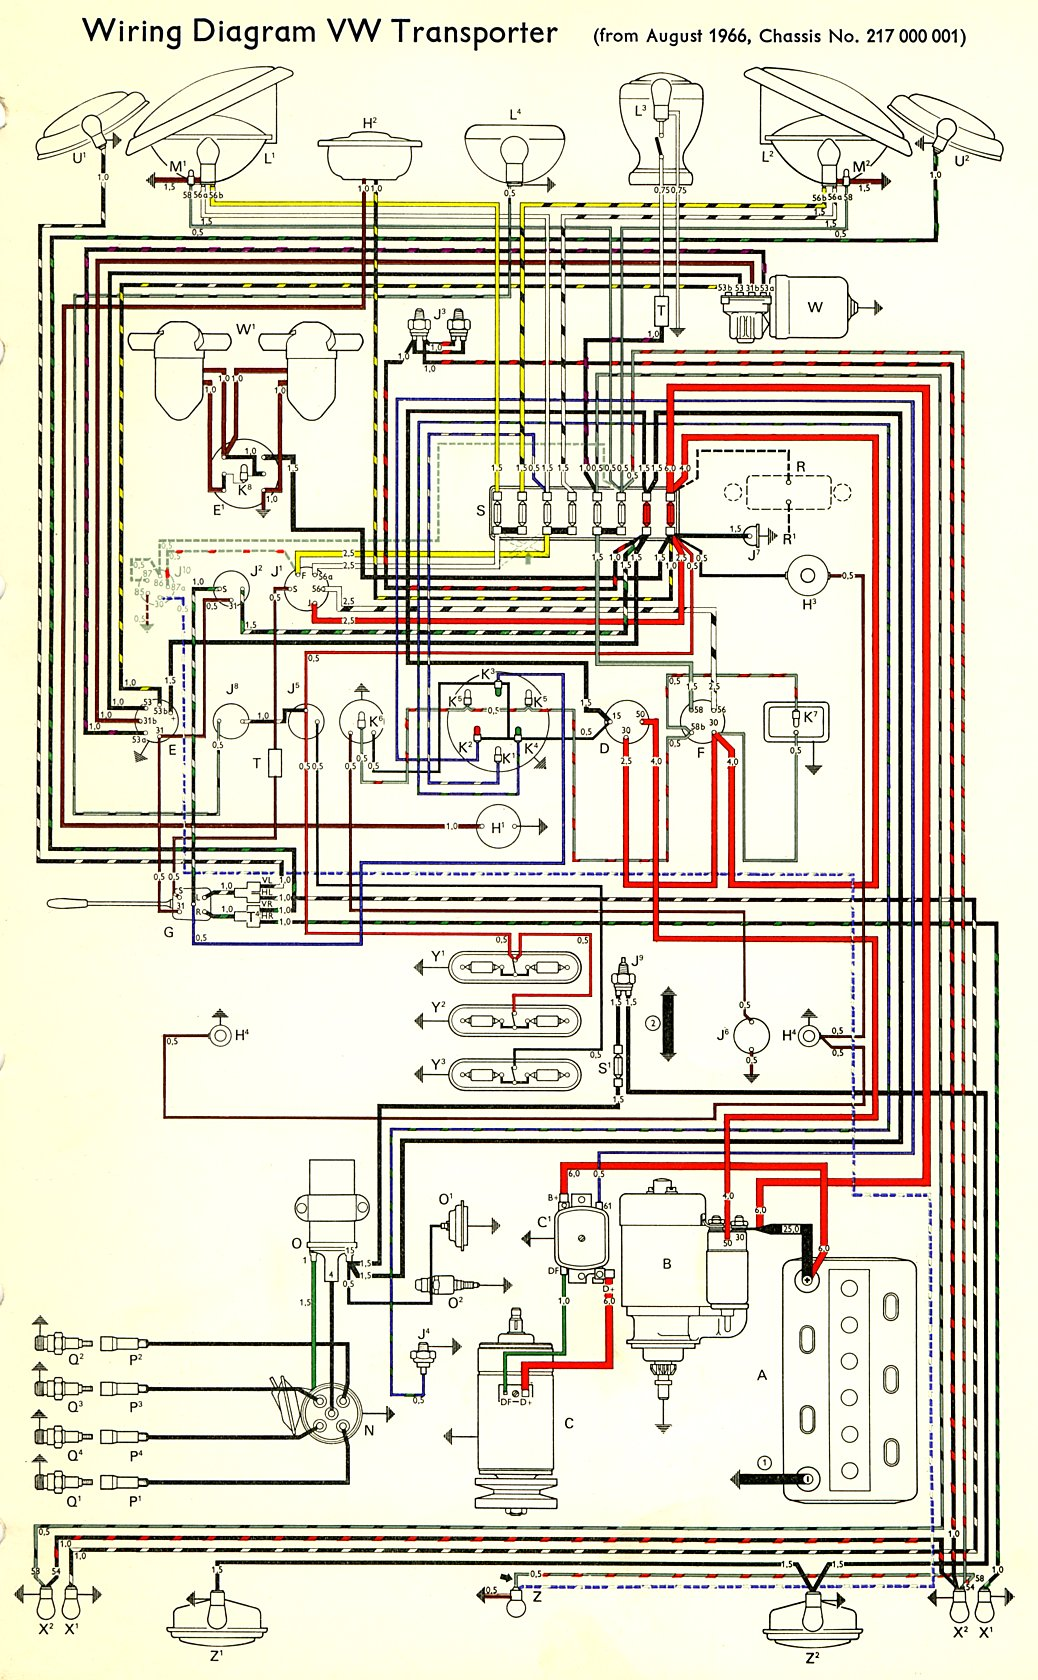 1960 vw wiring diagram